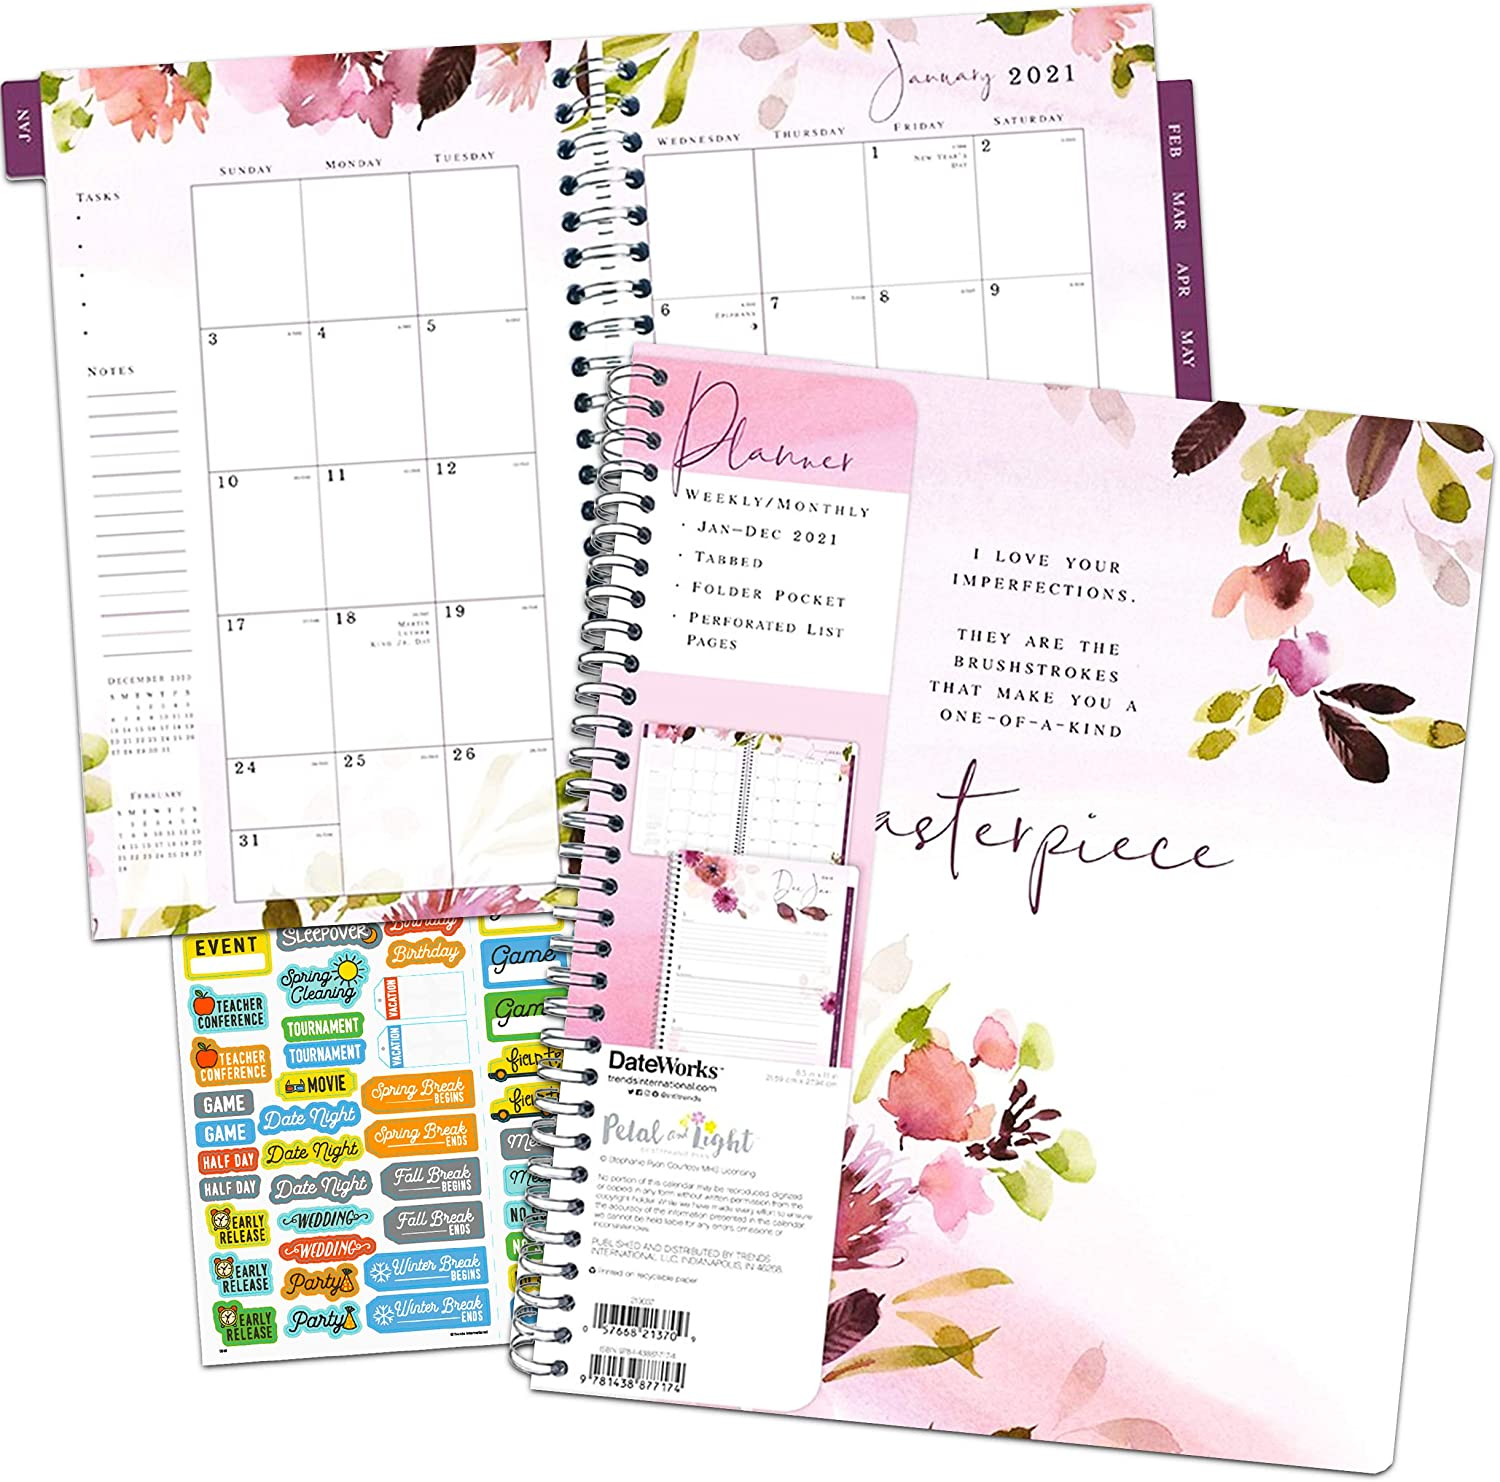 Stephanie Ryan's Beauty & Light Calendar 2021 Bundle - Deluxe 2021 Watercolor Flowers Weekly/Monthly Planner - 8.5 x 11 Calendar with Over 100 Calendar Stickers